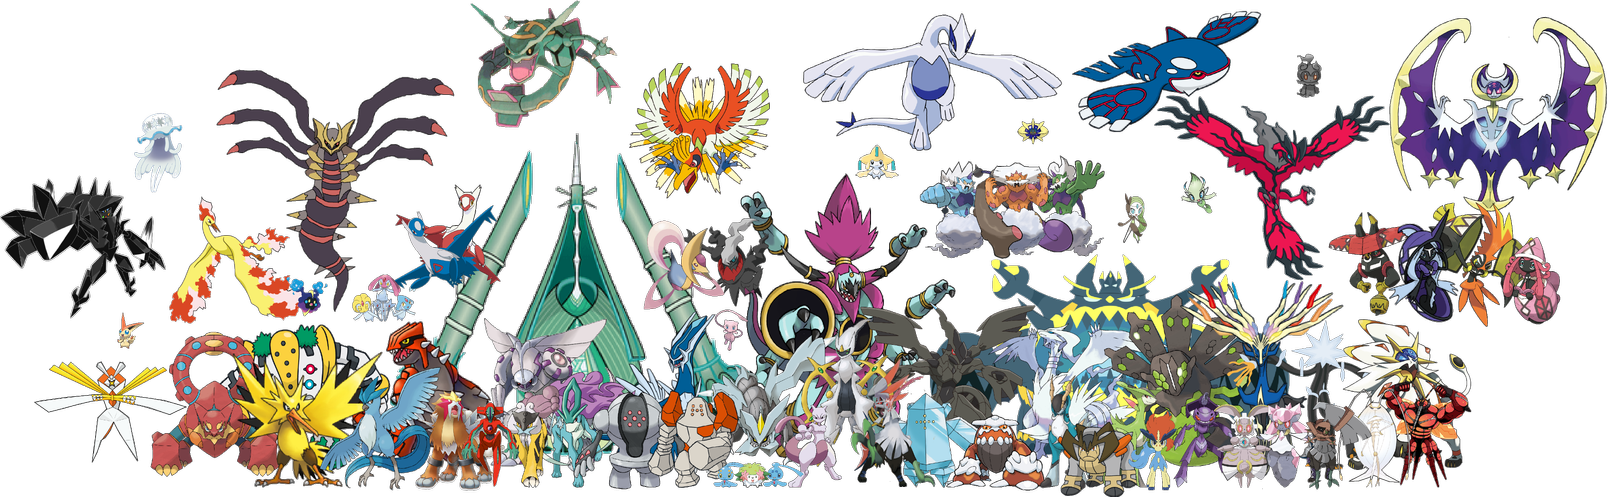 Legendary Pokemon Png - All Legendary Pokemon in PNG by DavidBksAndrade on DeviantArt